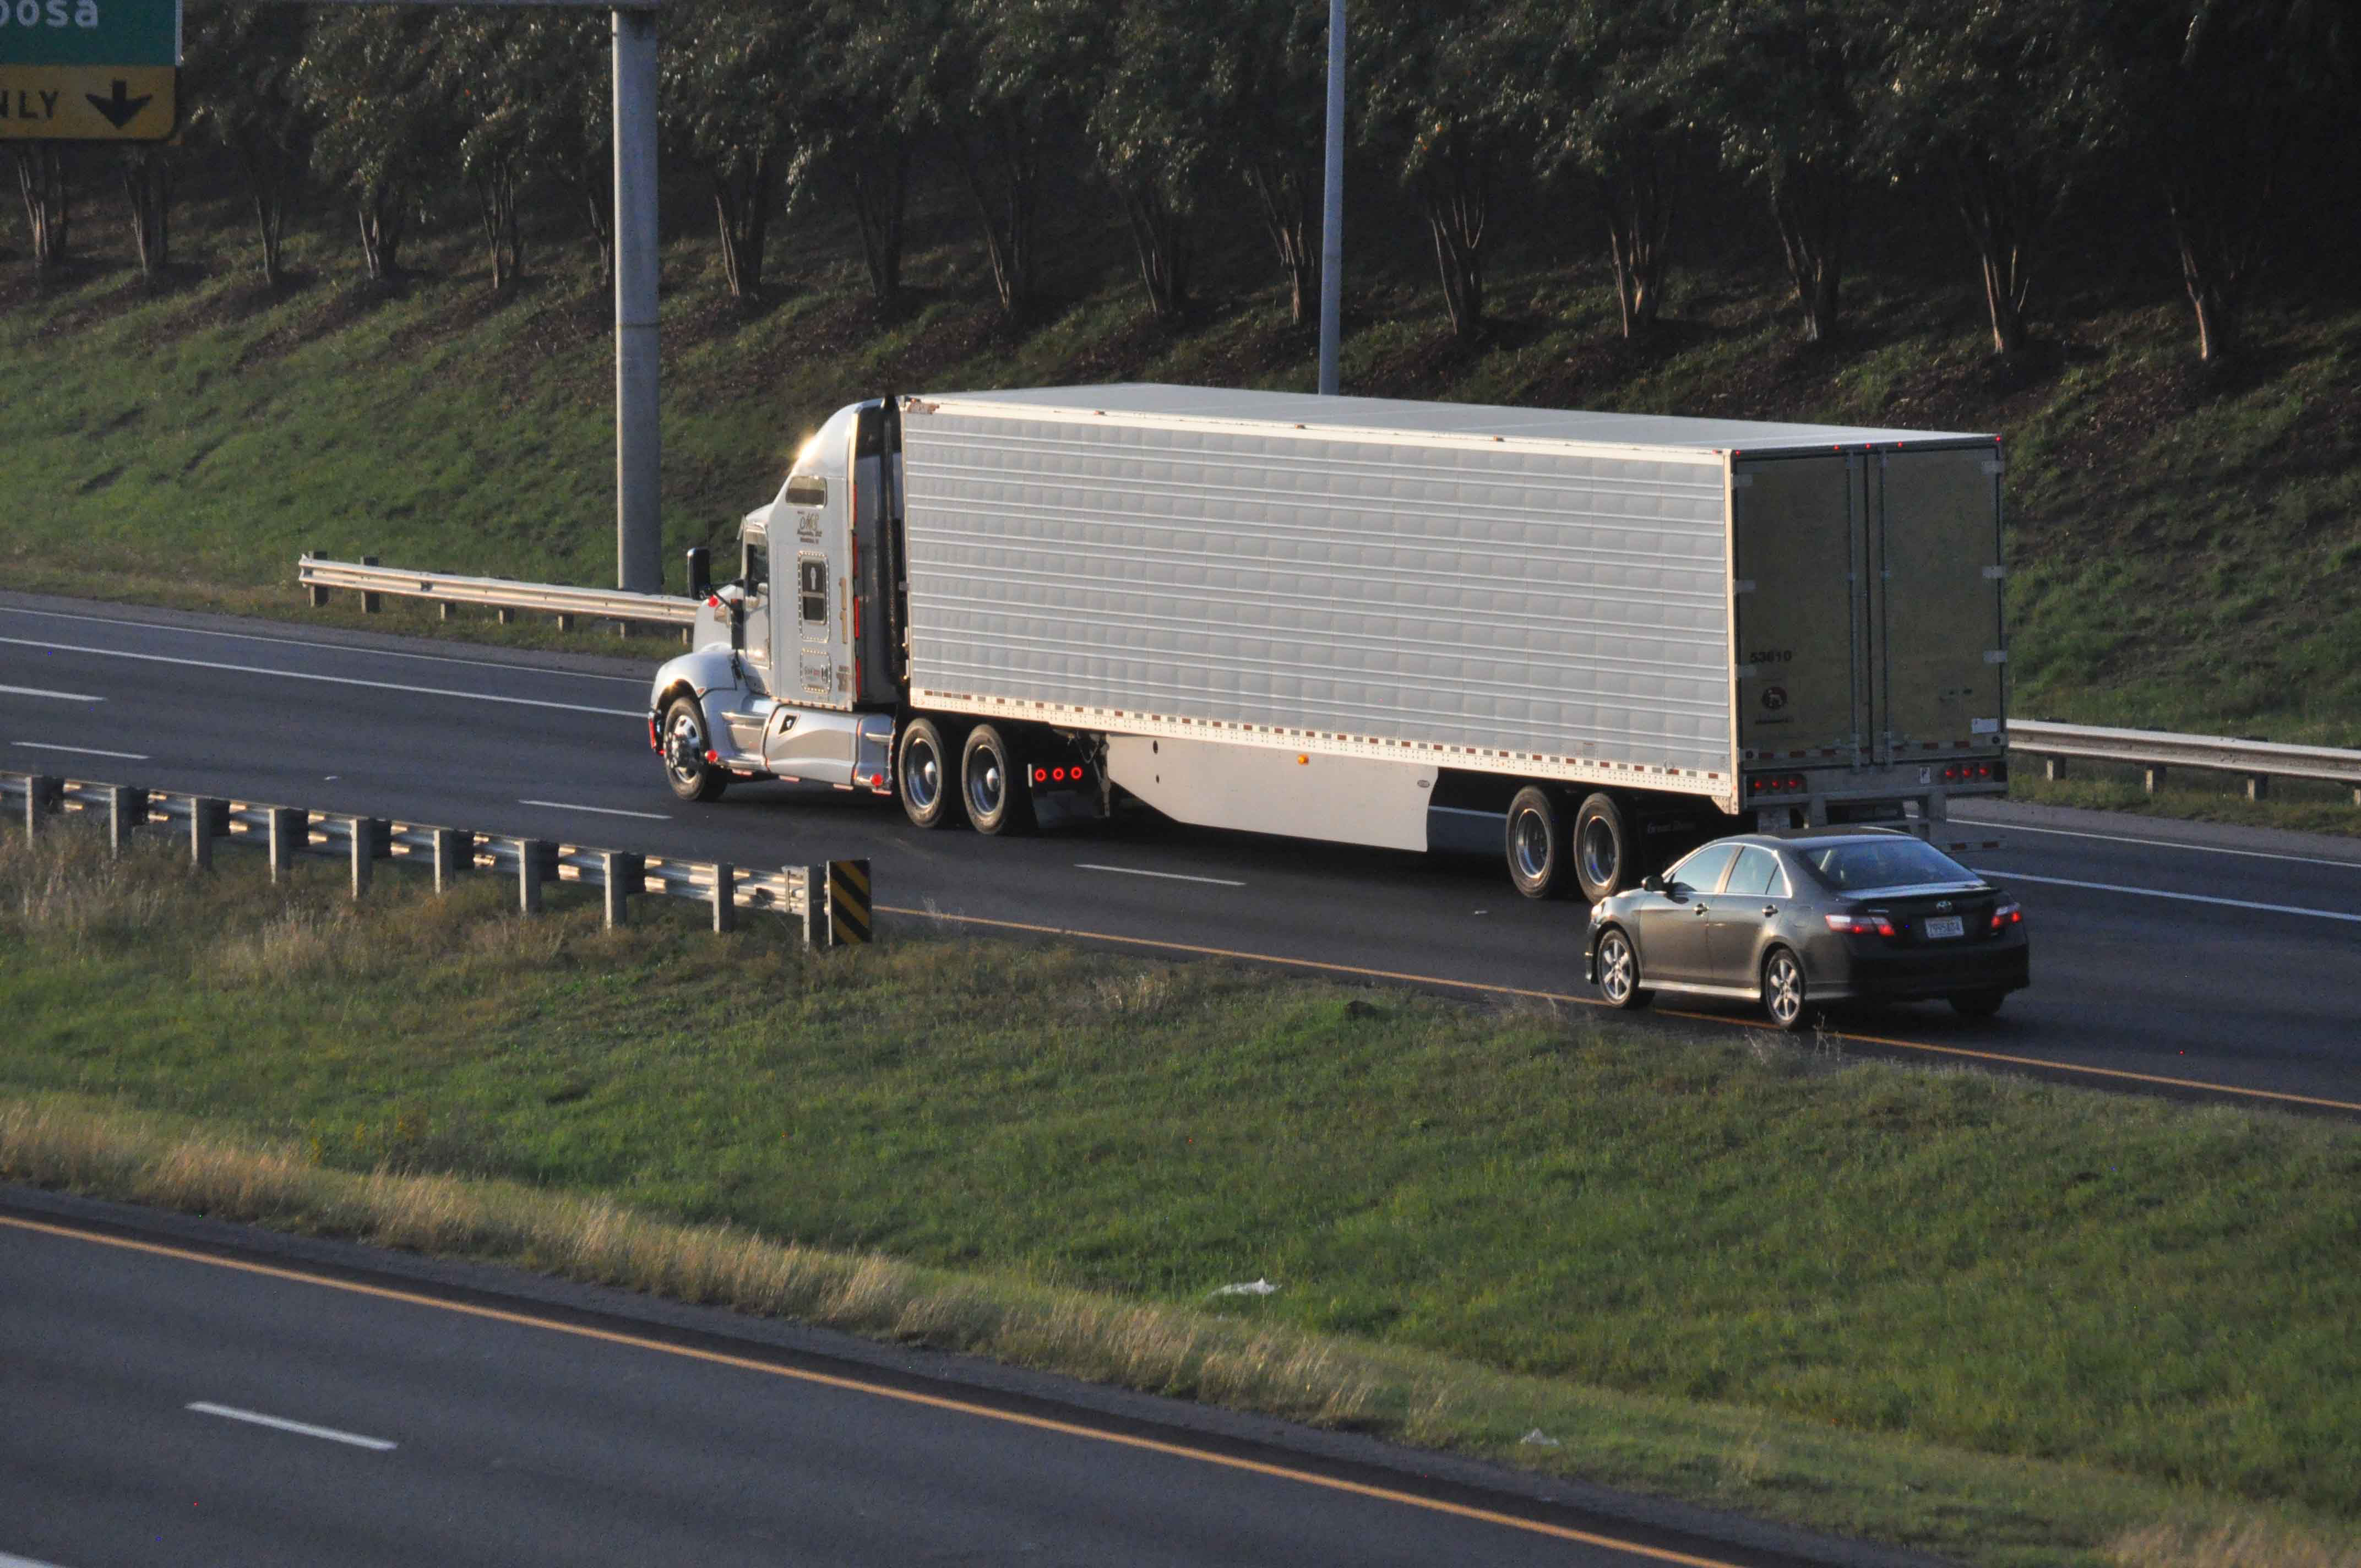 OOIDA: Speed limiter rule comment period too short